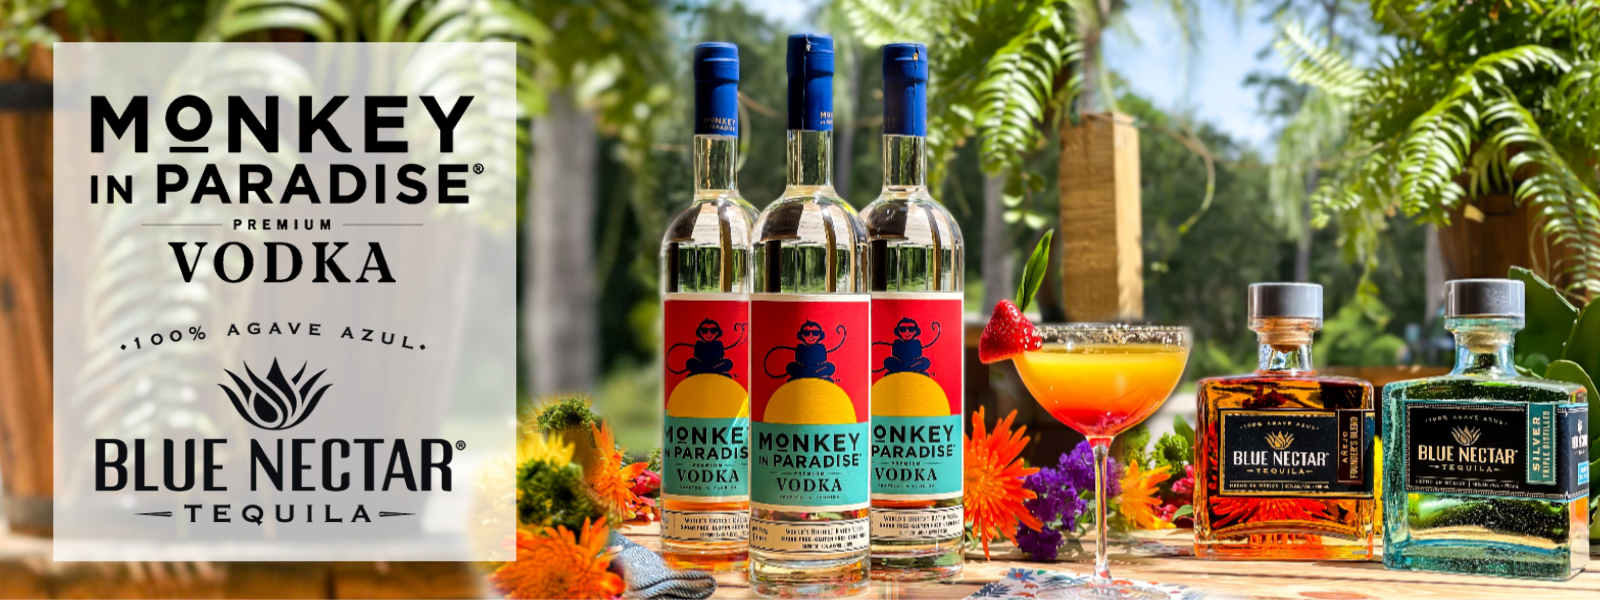 Buy Monkey and Paradise Vodka & Blue Nectar Tequila Online at CaskCartel.com